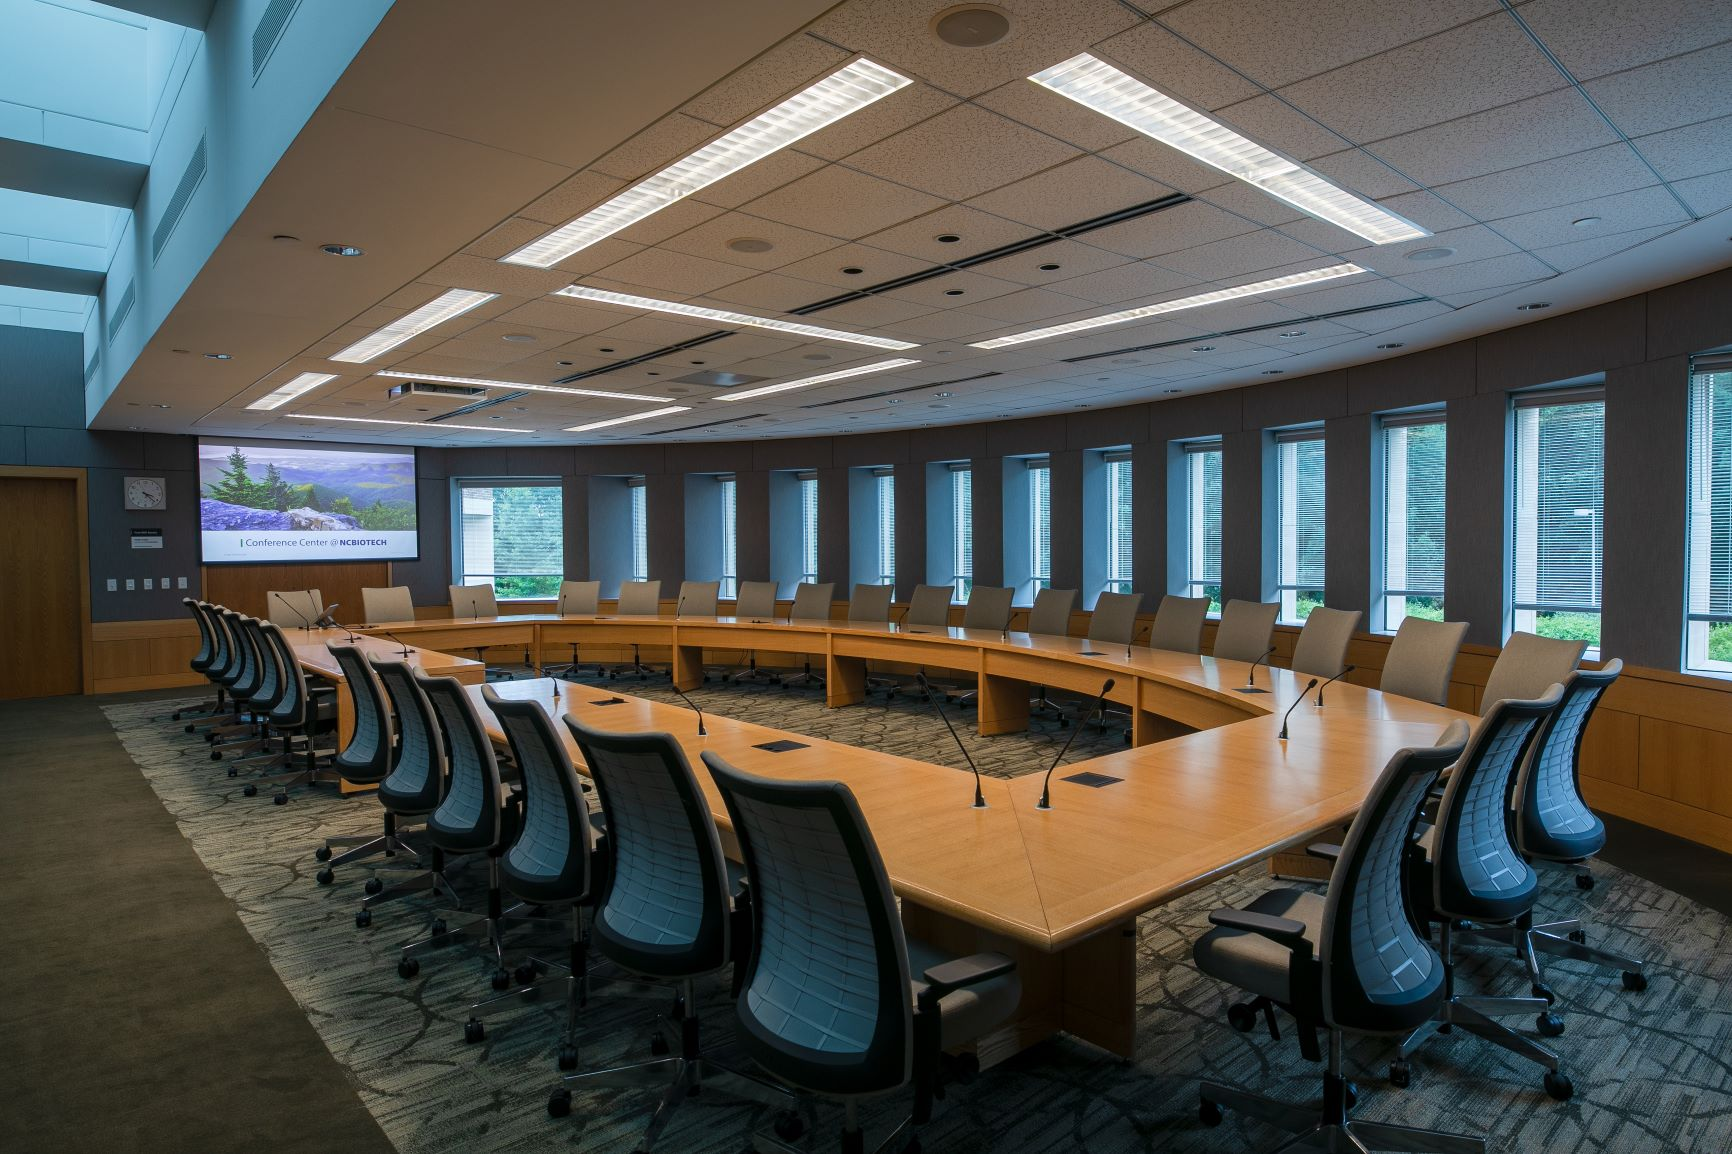 Board of Directors room